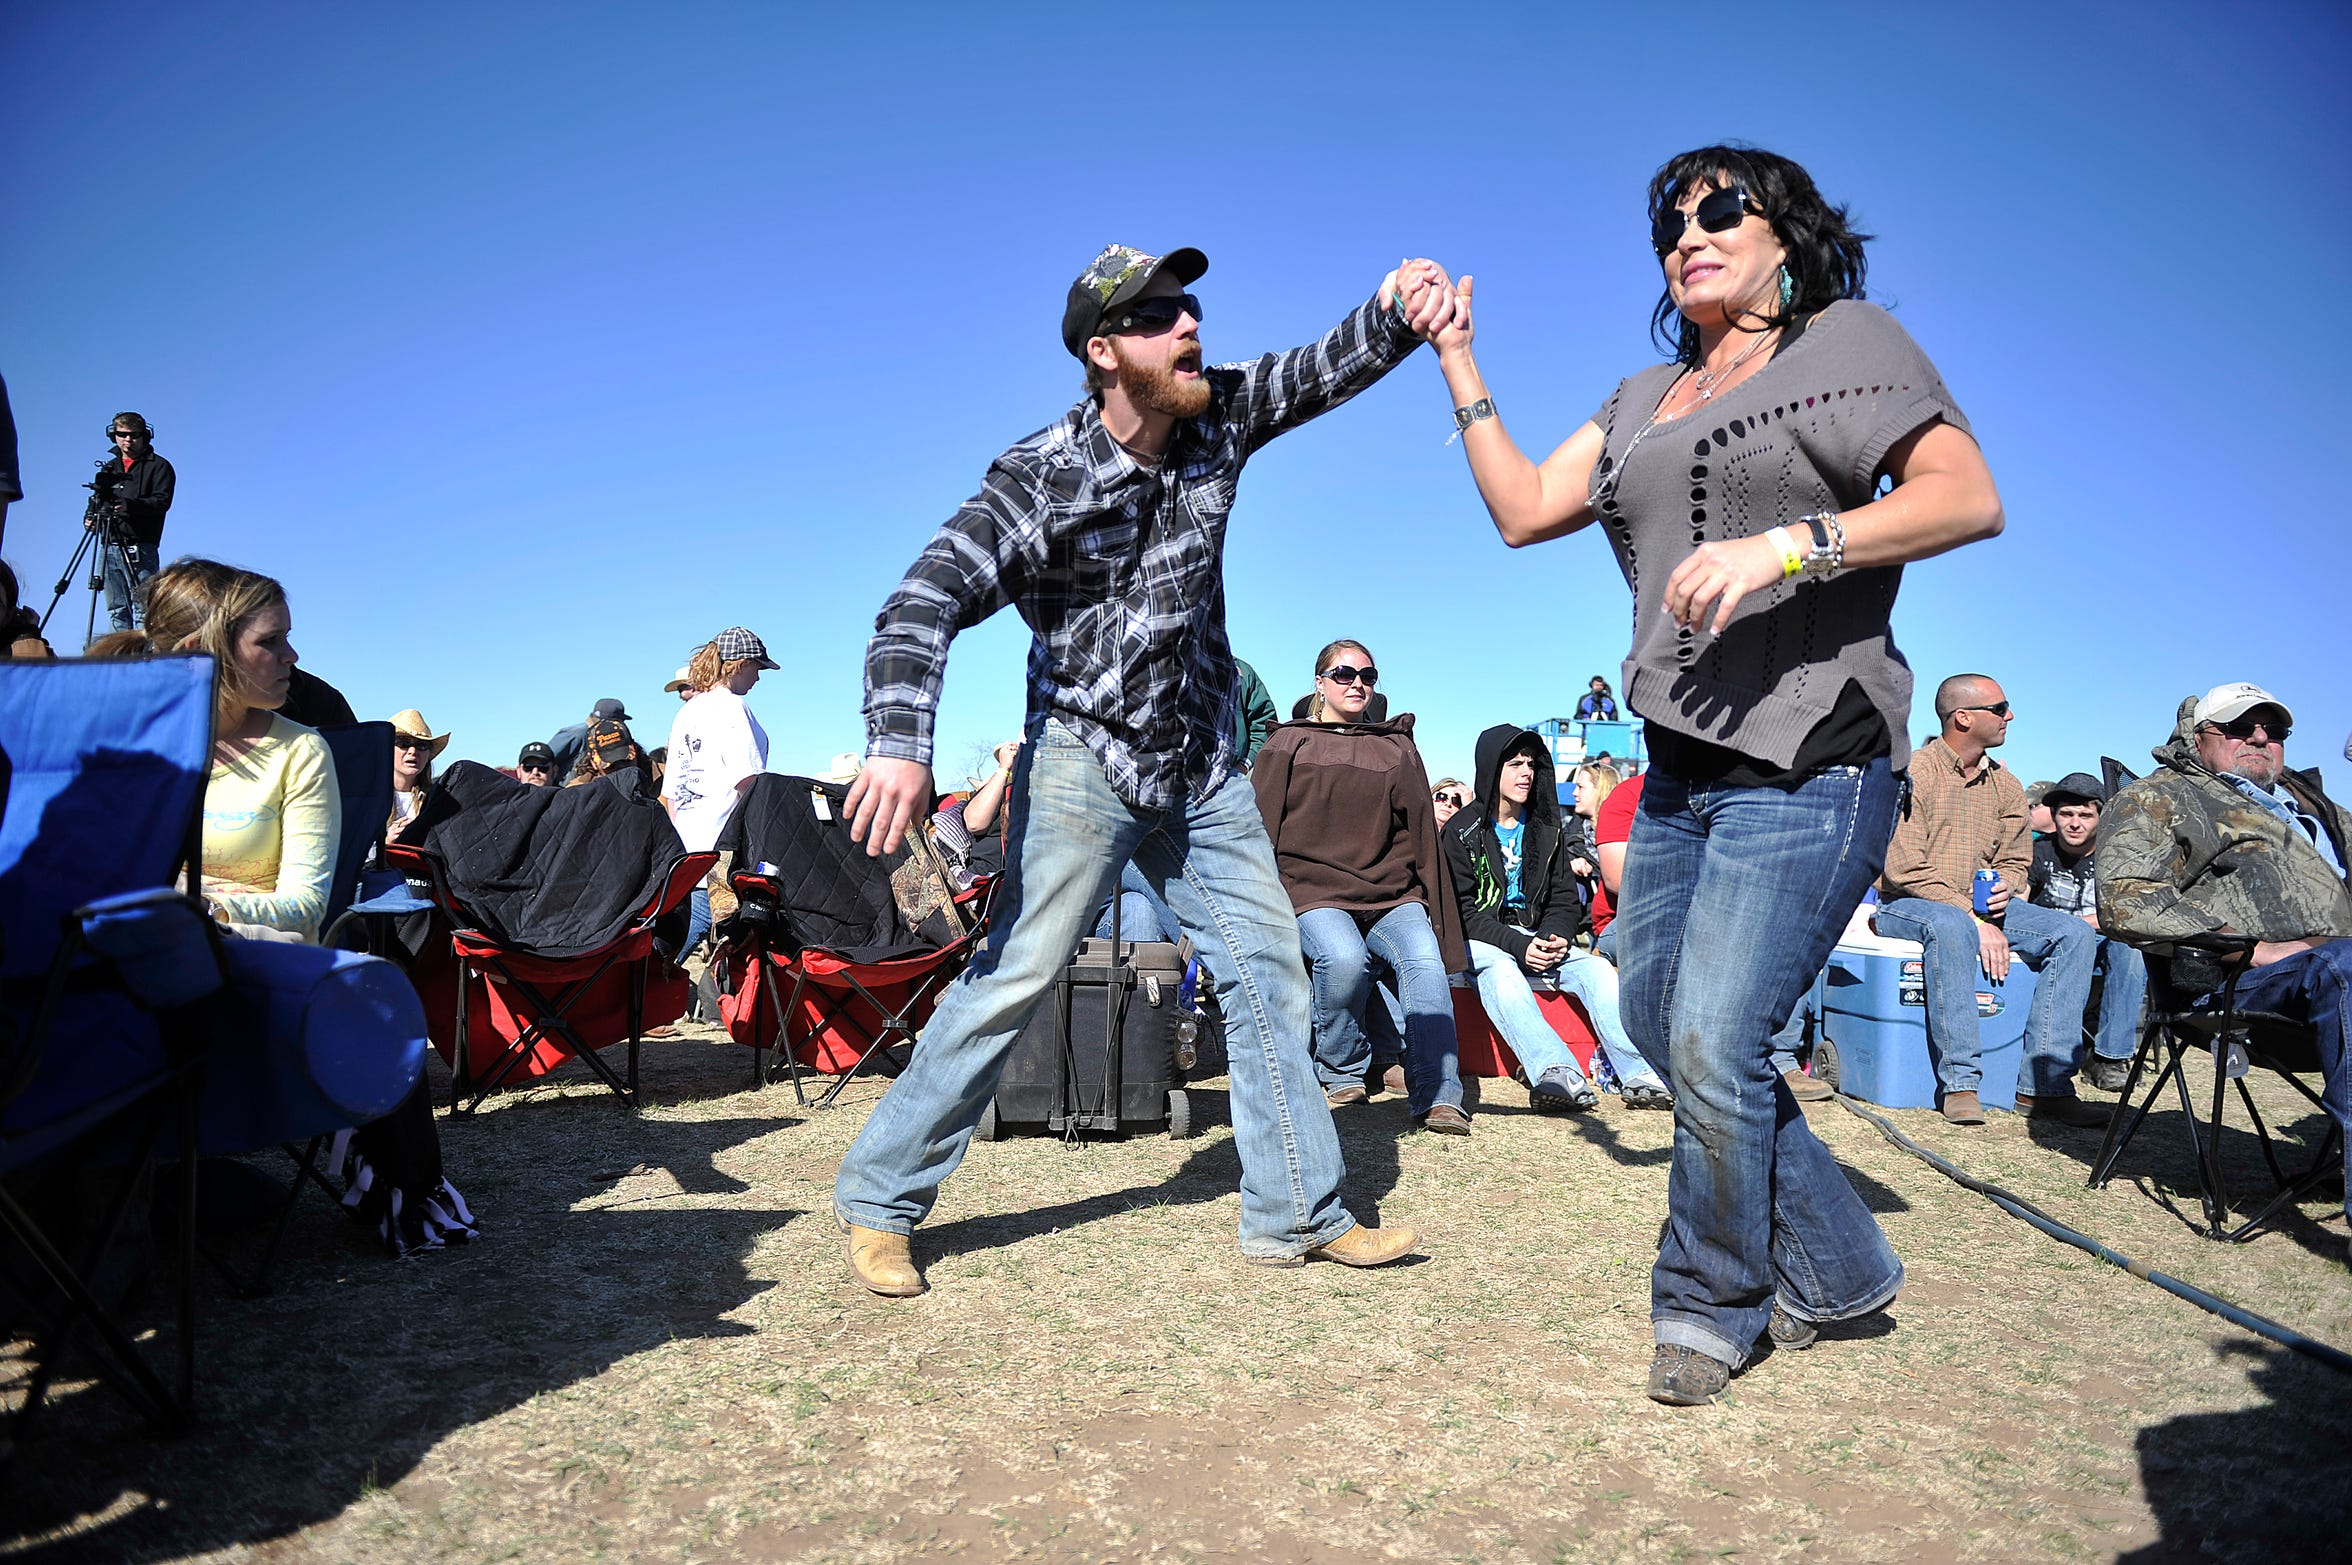 Jared Scott, left, and Shayla Griffon of Potosi dance while Bleu Edmondson plays during the Outlaws & Legends festival at Joe Allen's Lytle Bend Ranch on Saturday, March 5, 2011.